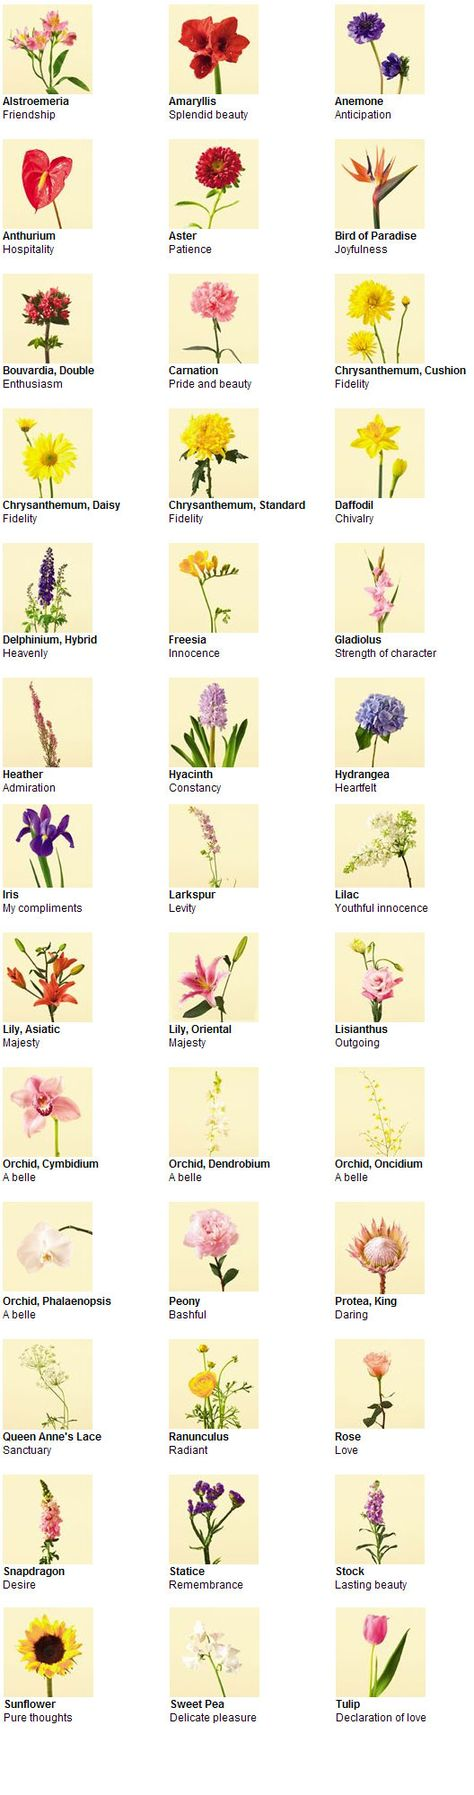 types of flowers pictures and names | Types of Flowers